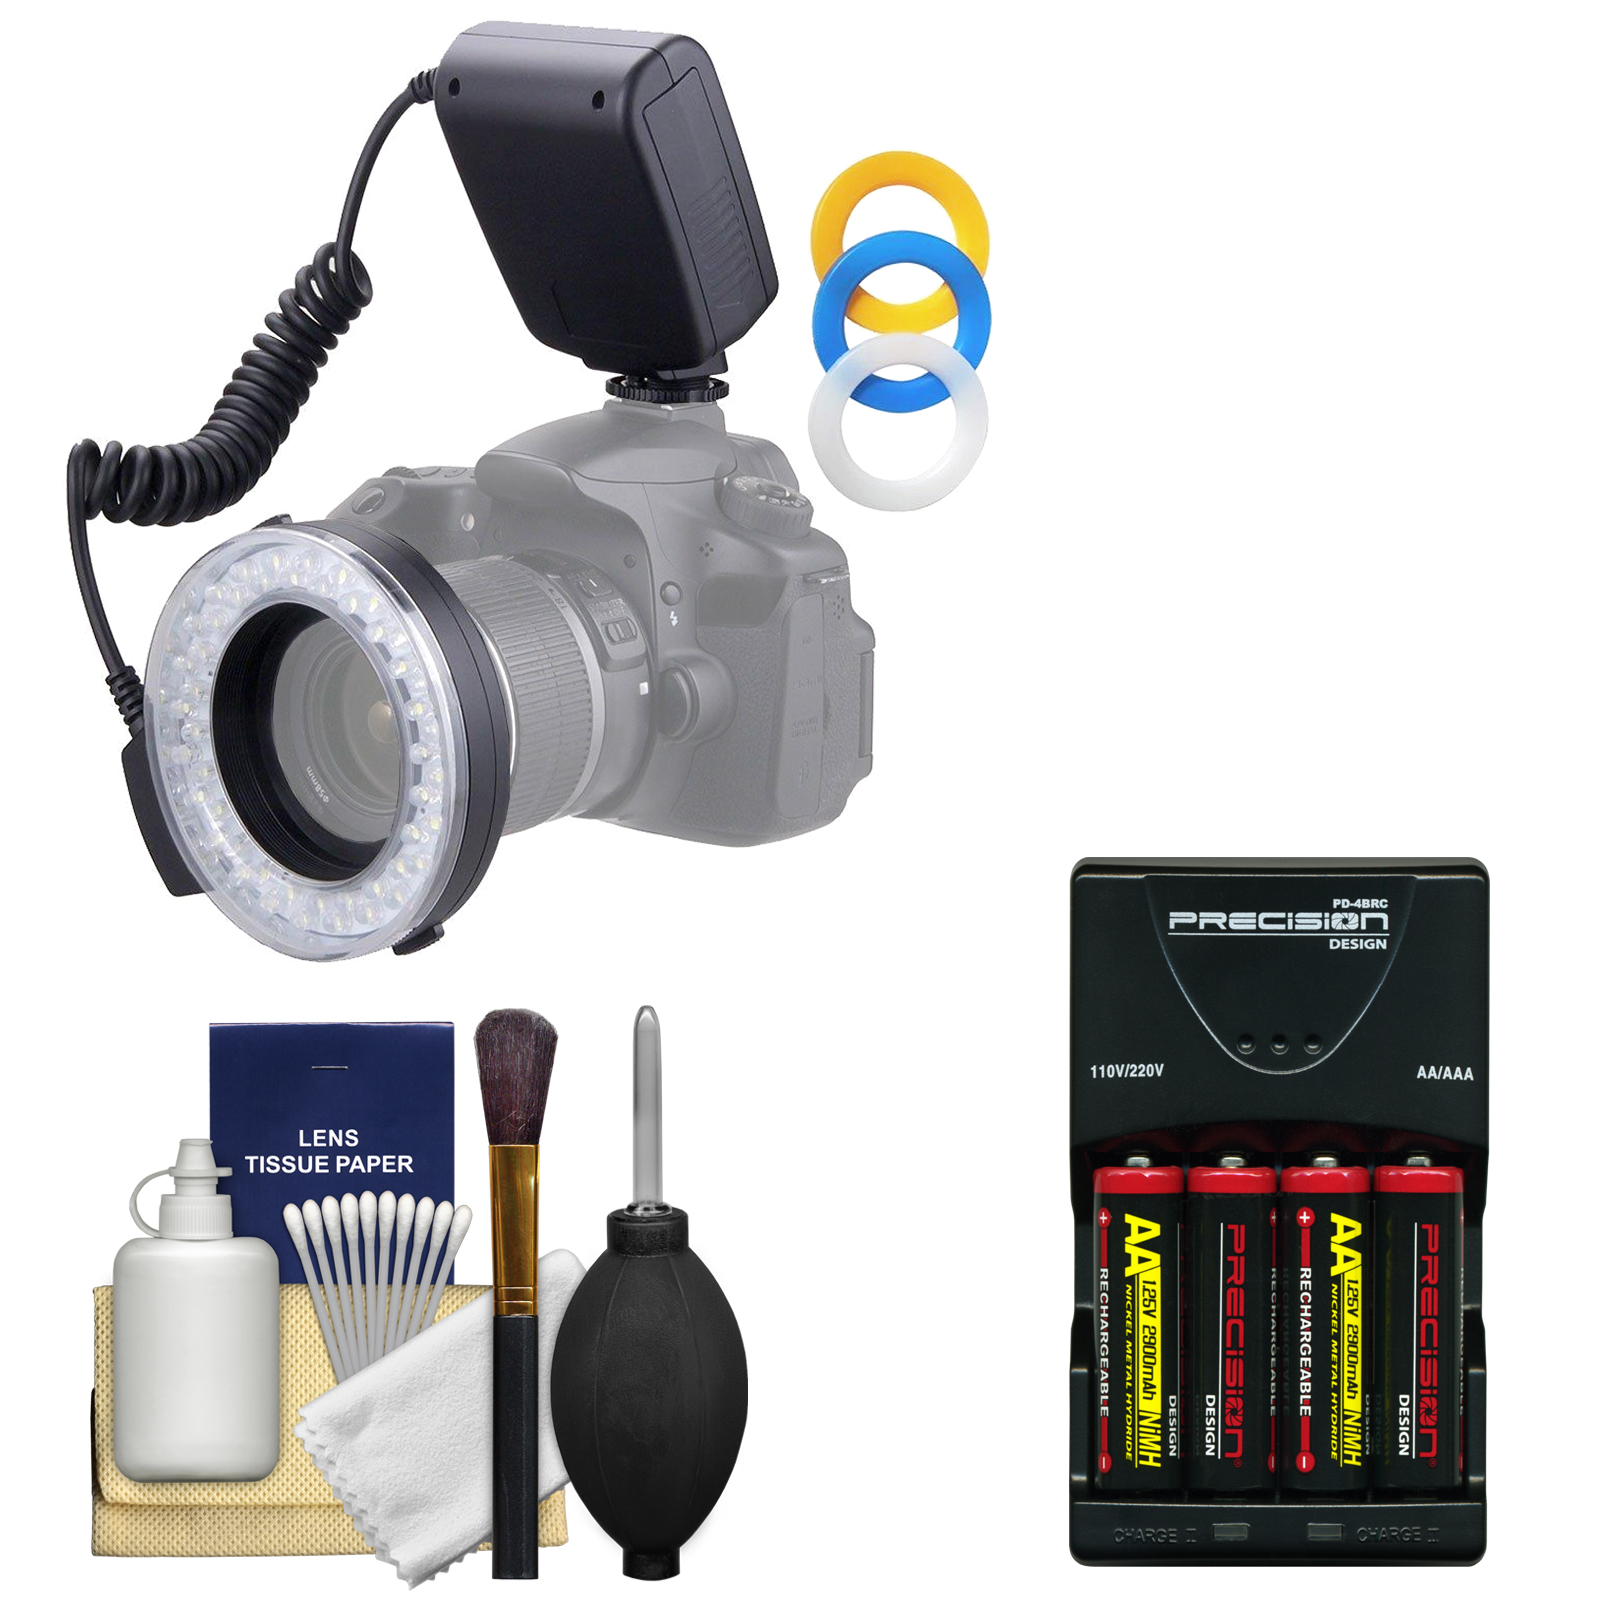 Vivitar Universal Macro 48 LED Ring Light & Flash with 4 Colored Diffusers with 4 Batteries & Charger + Cleaning Kit